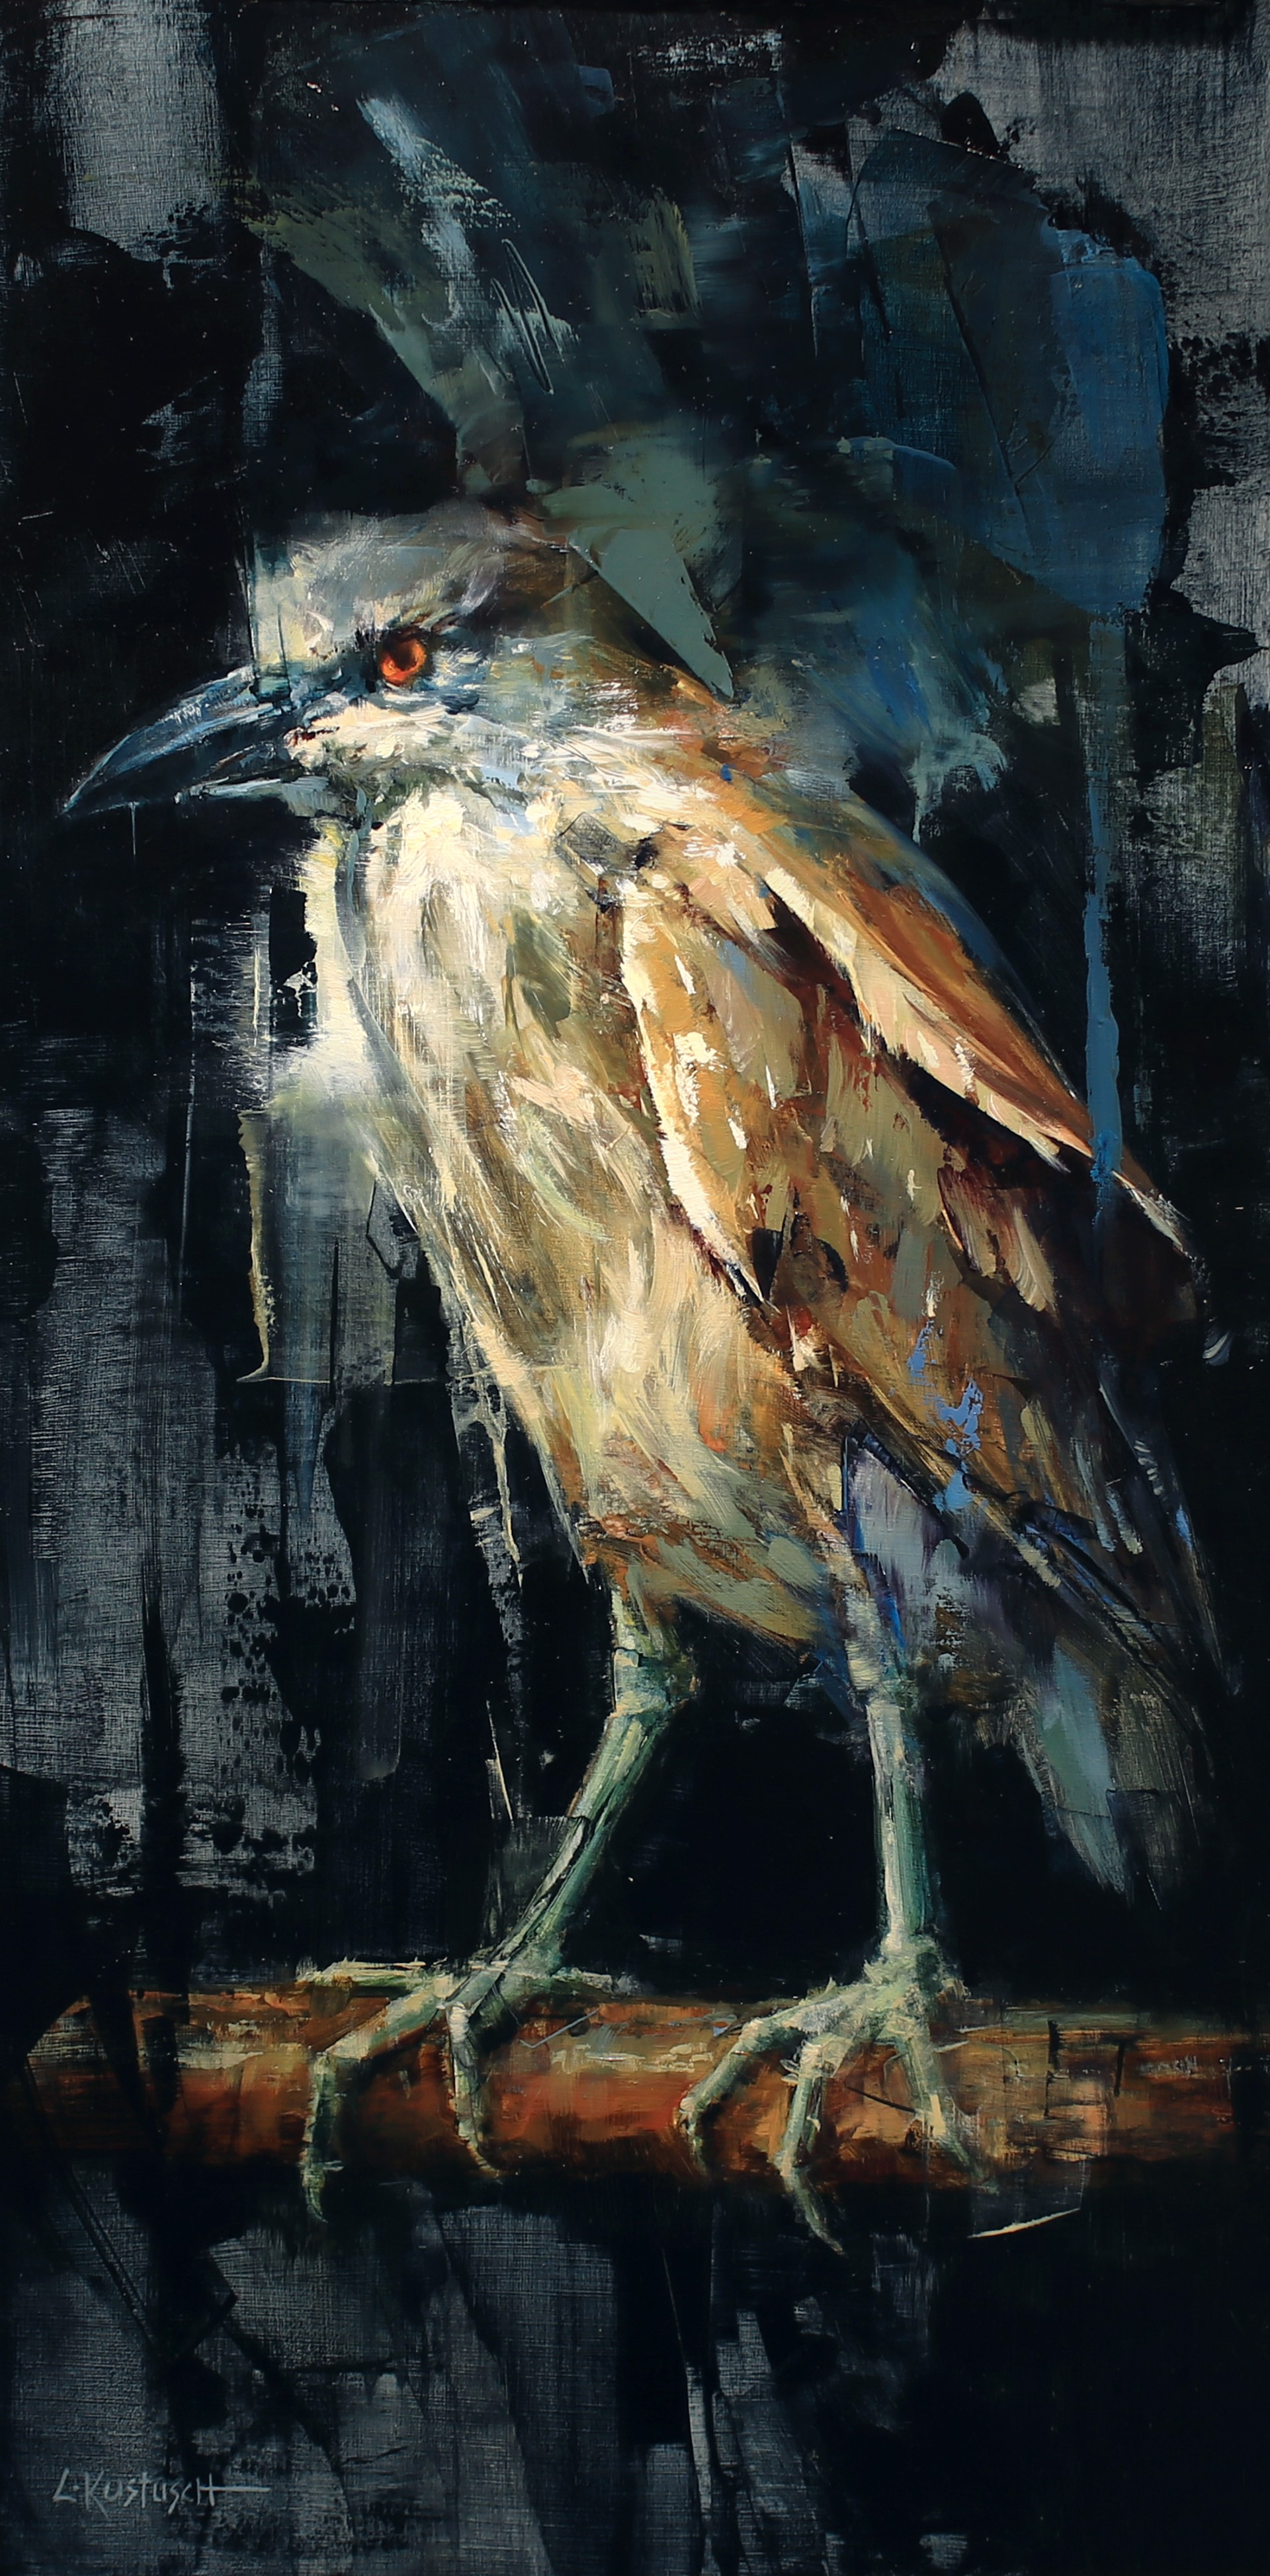 The Night Heron by Lindsey Kustusch